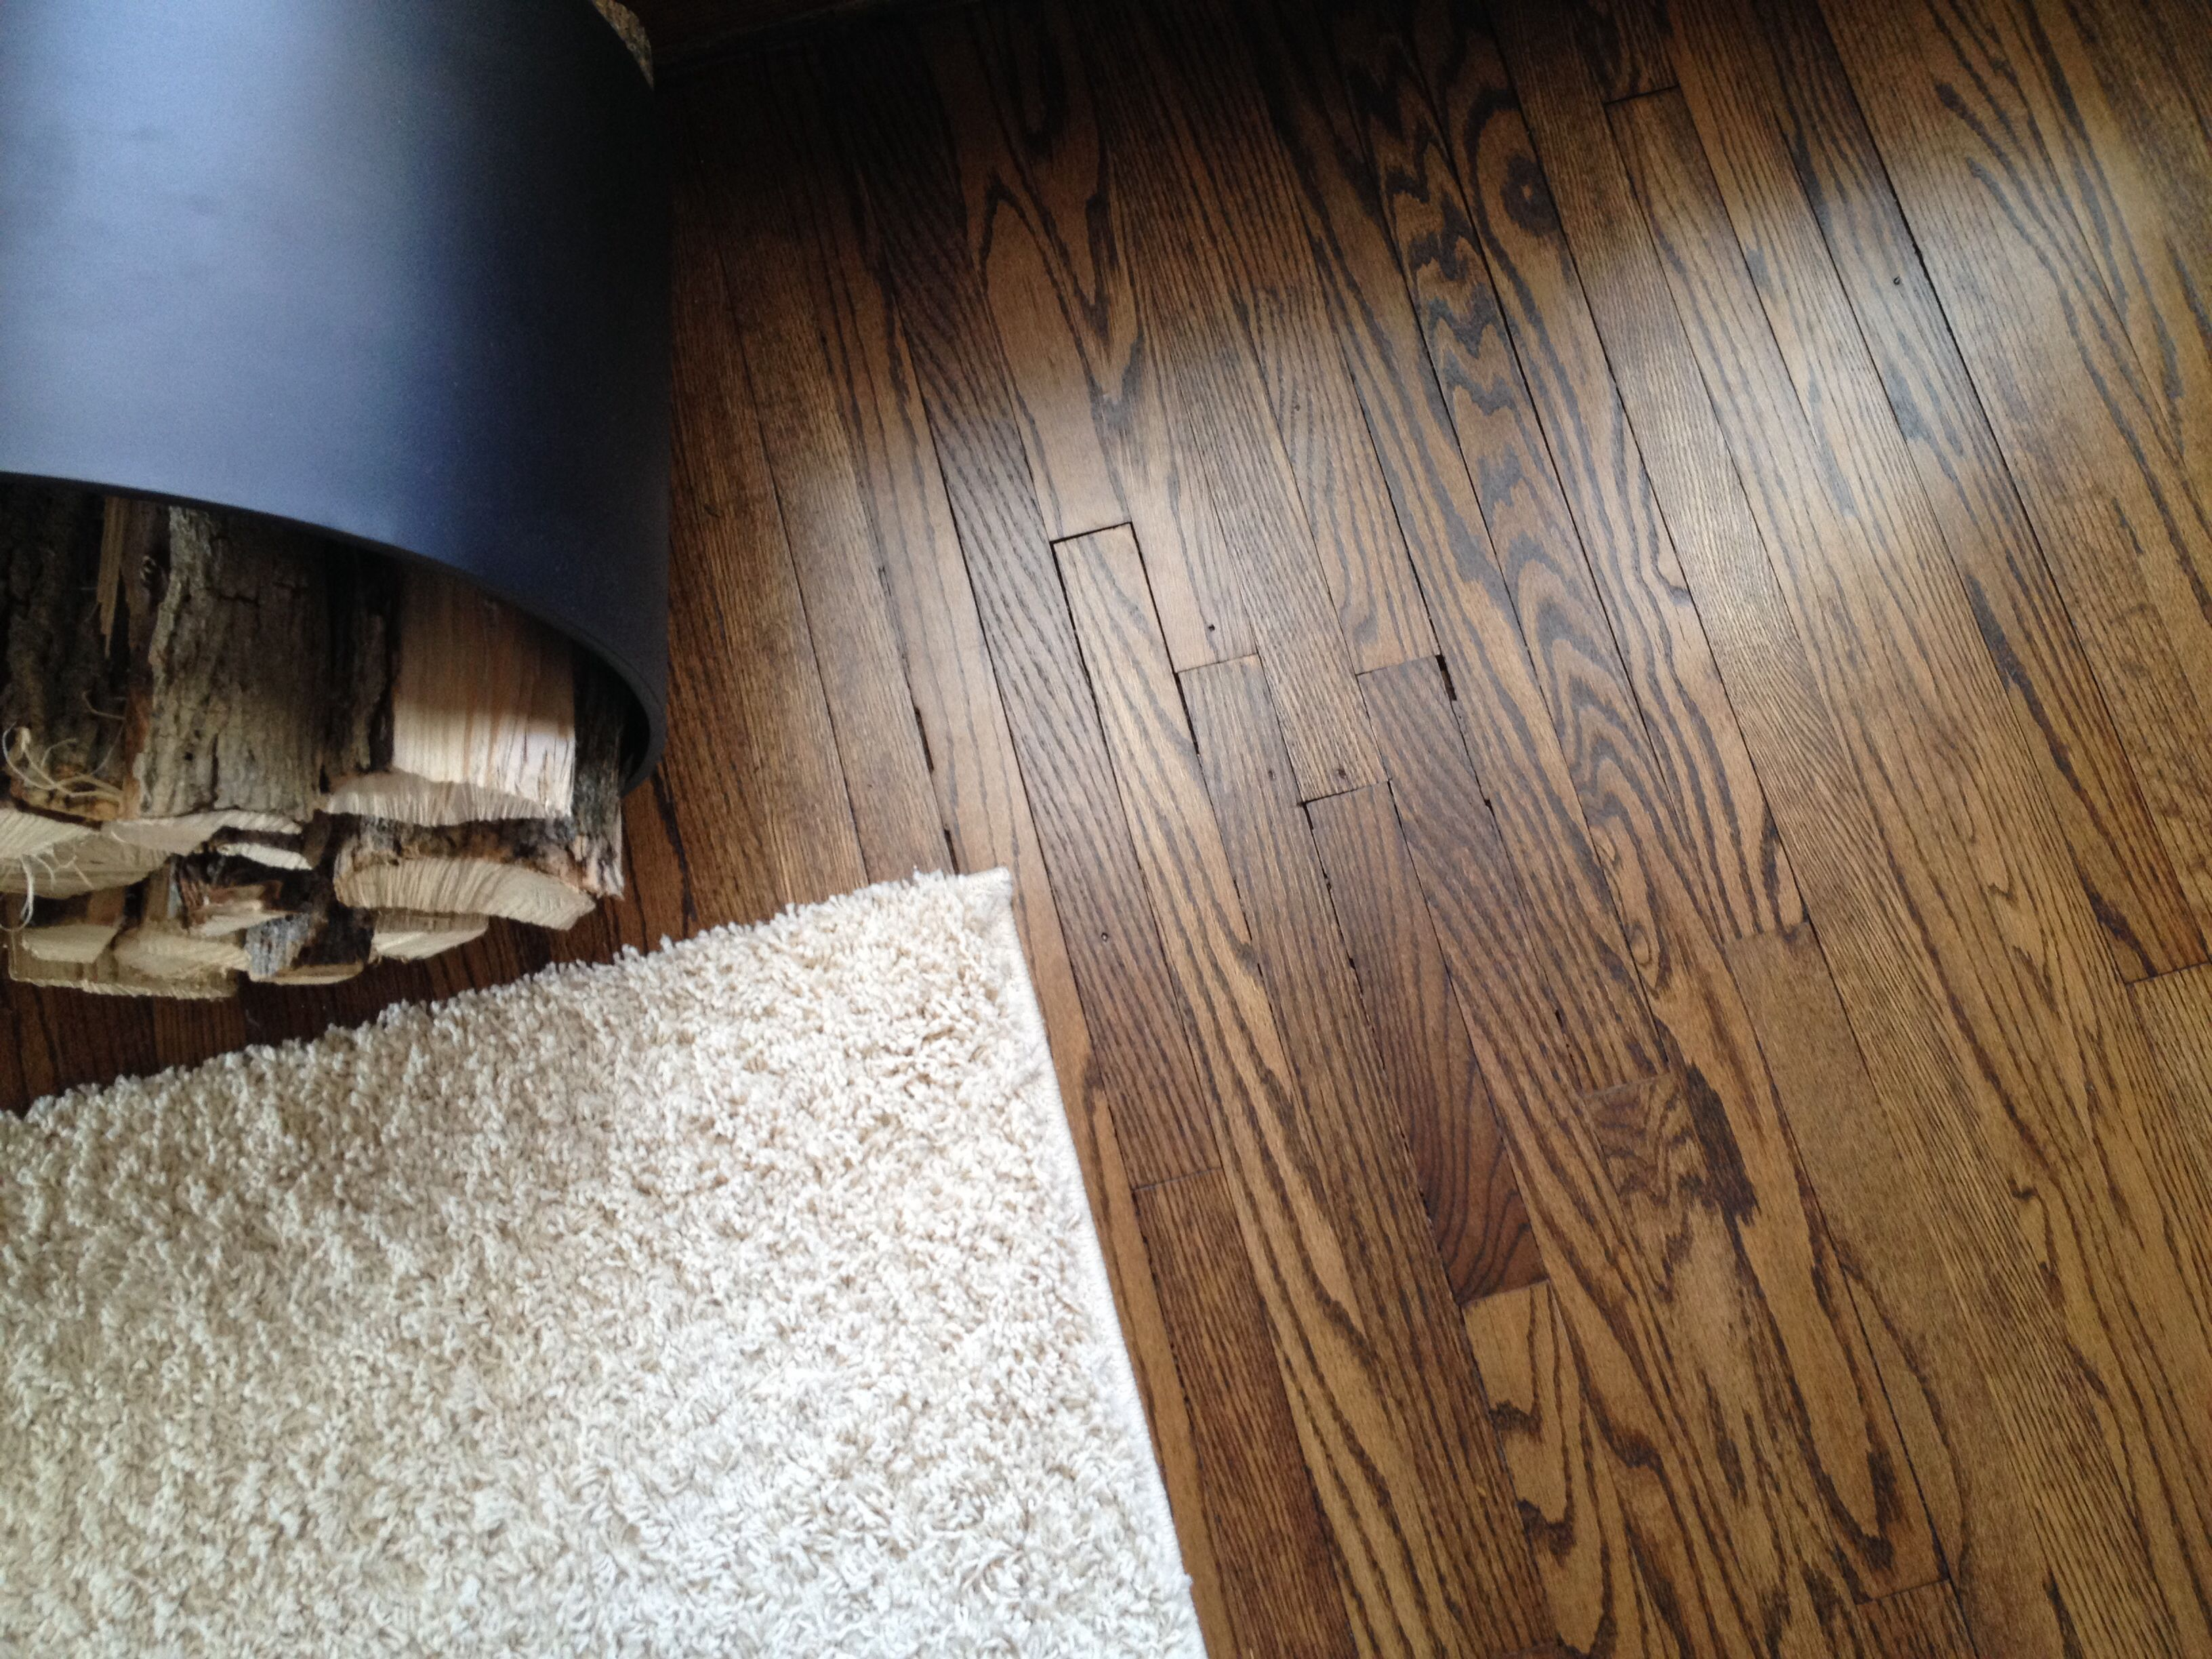 113 year old original oak floors Refinished in espresso stain